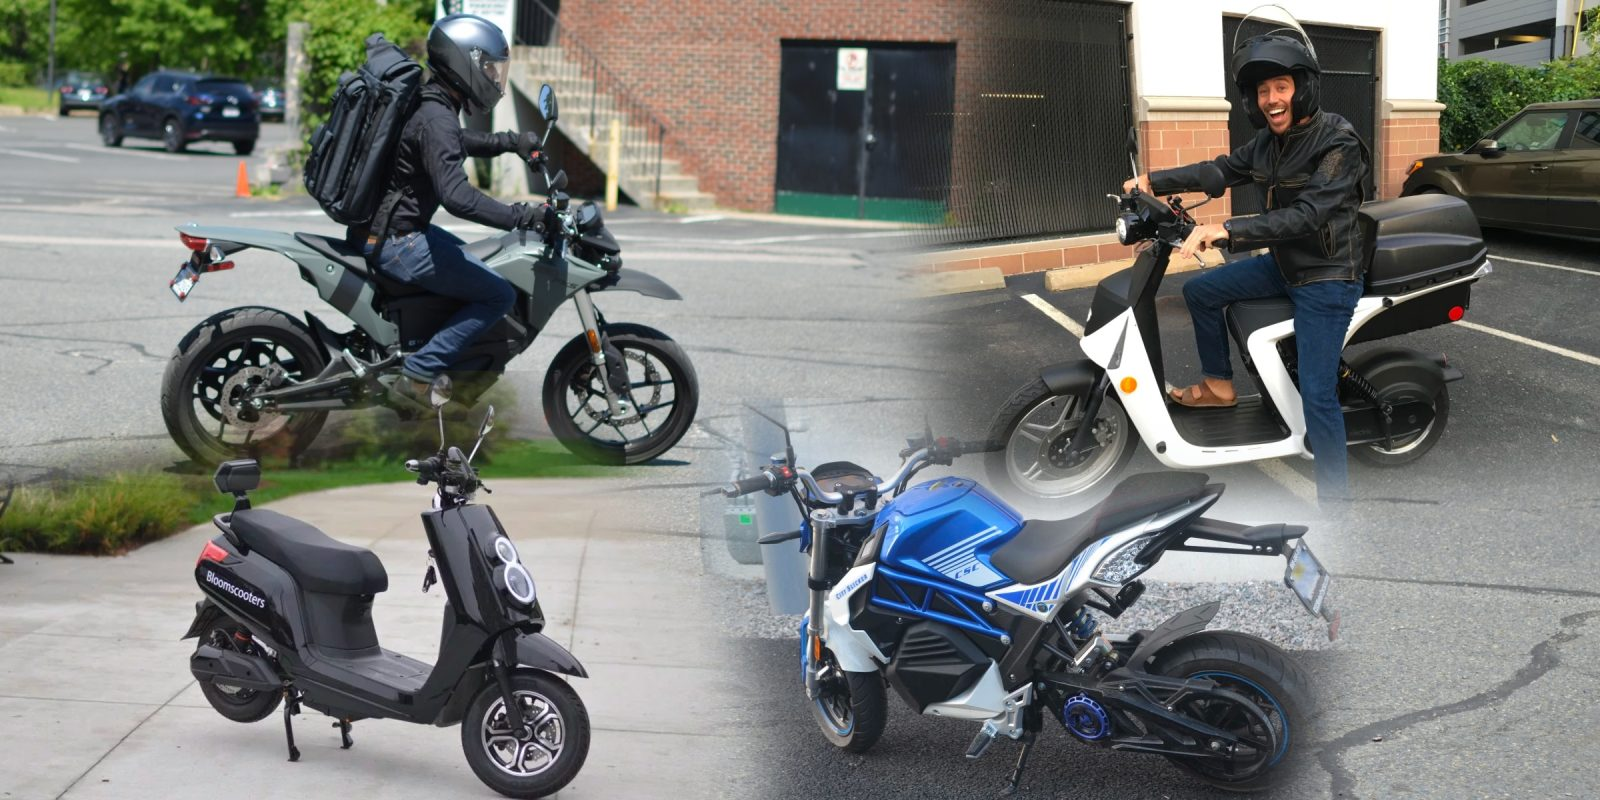 Urban electric motorcycle and scooter showdown: Zero FXS vs